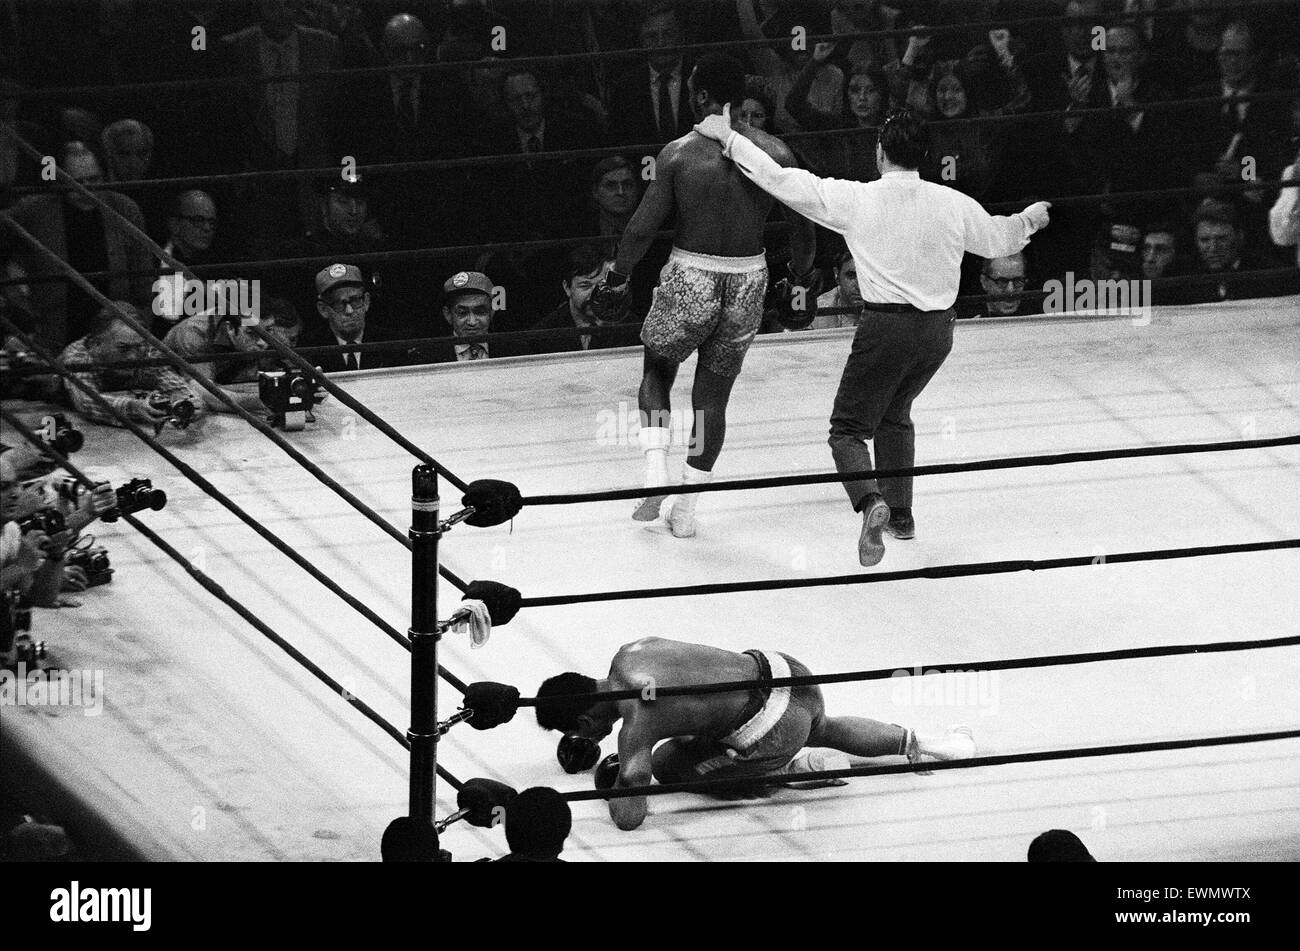 In 1971, both Ali and Frazier had legitimate claims to the title of World Heavyweight Champion. An undefeated Ali - Stock Image